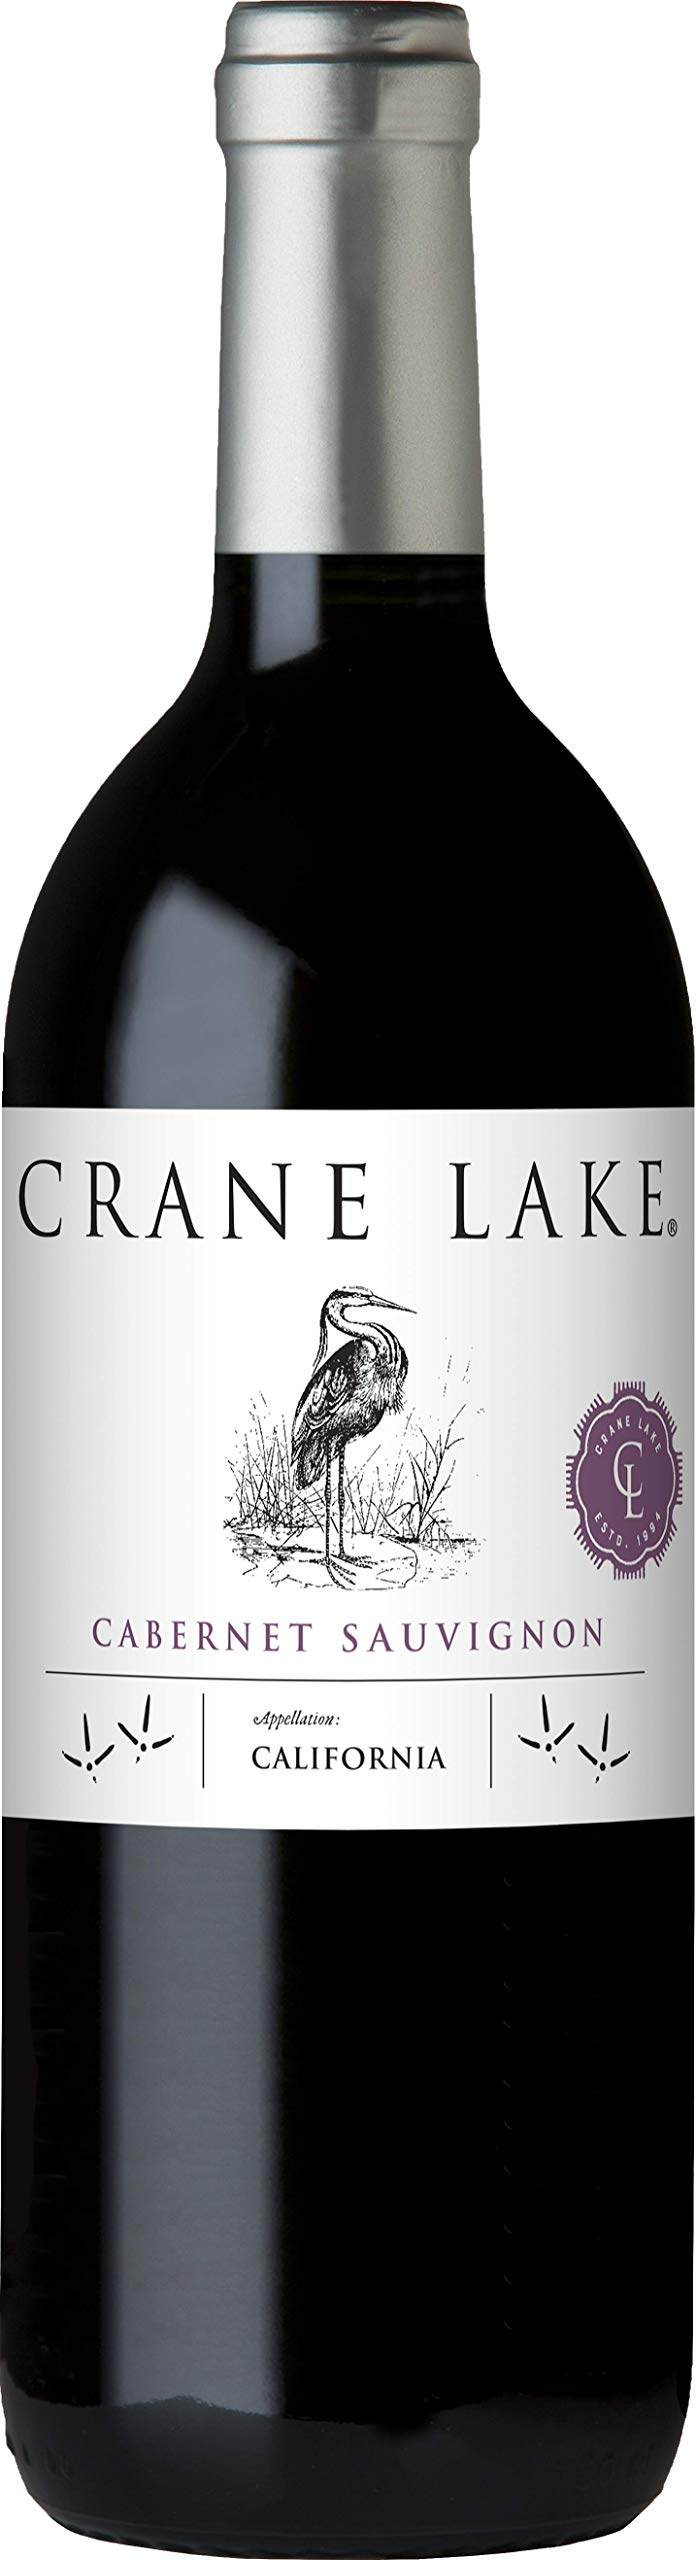 Bronco-Wine-Company-Crane-Lake-Shiraz-2015-6-x-075-l